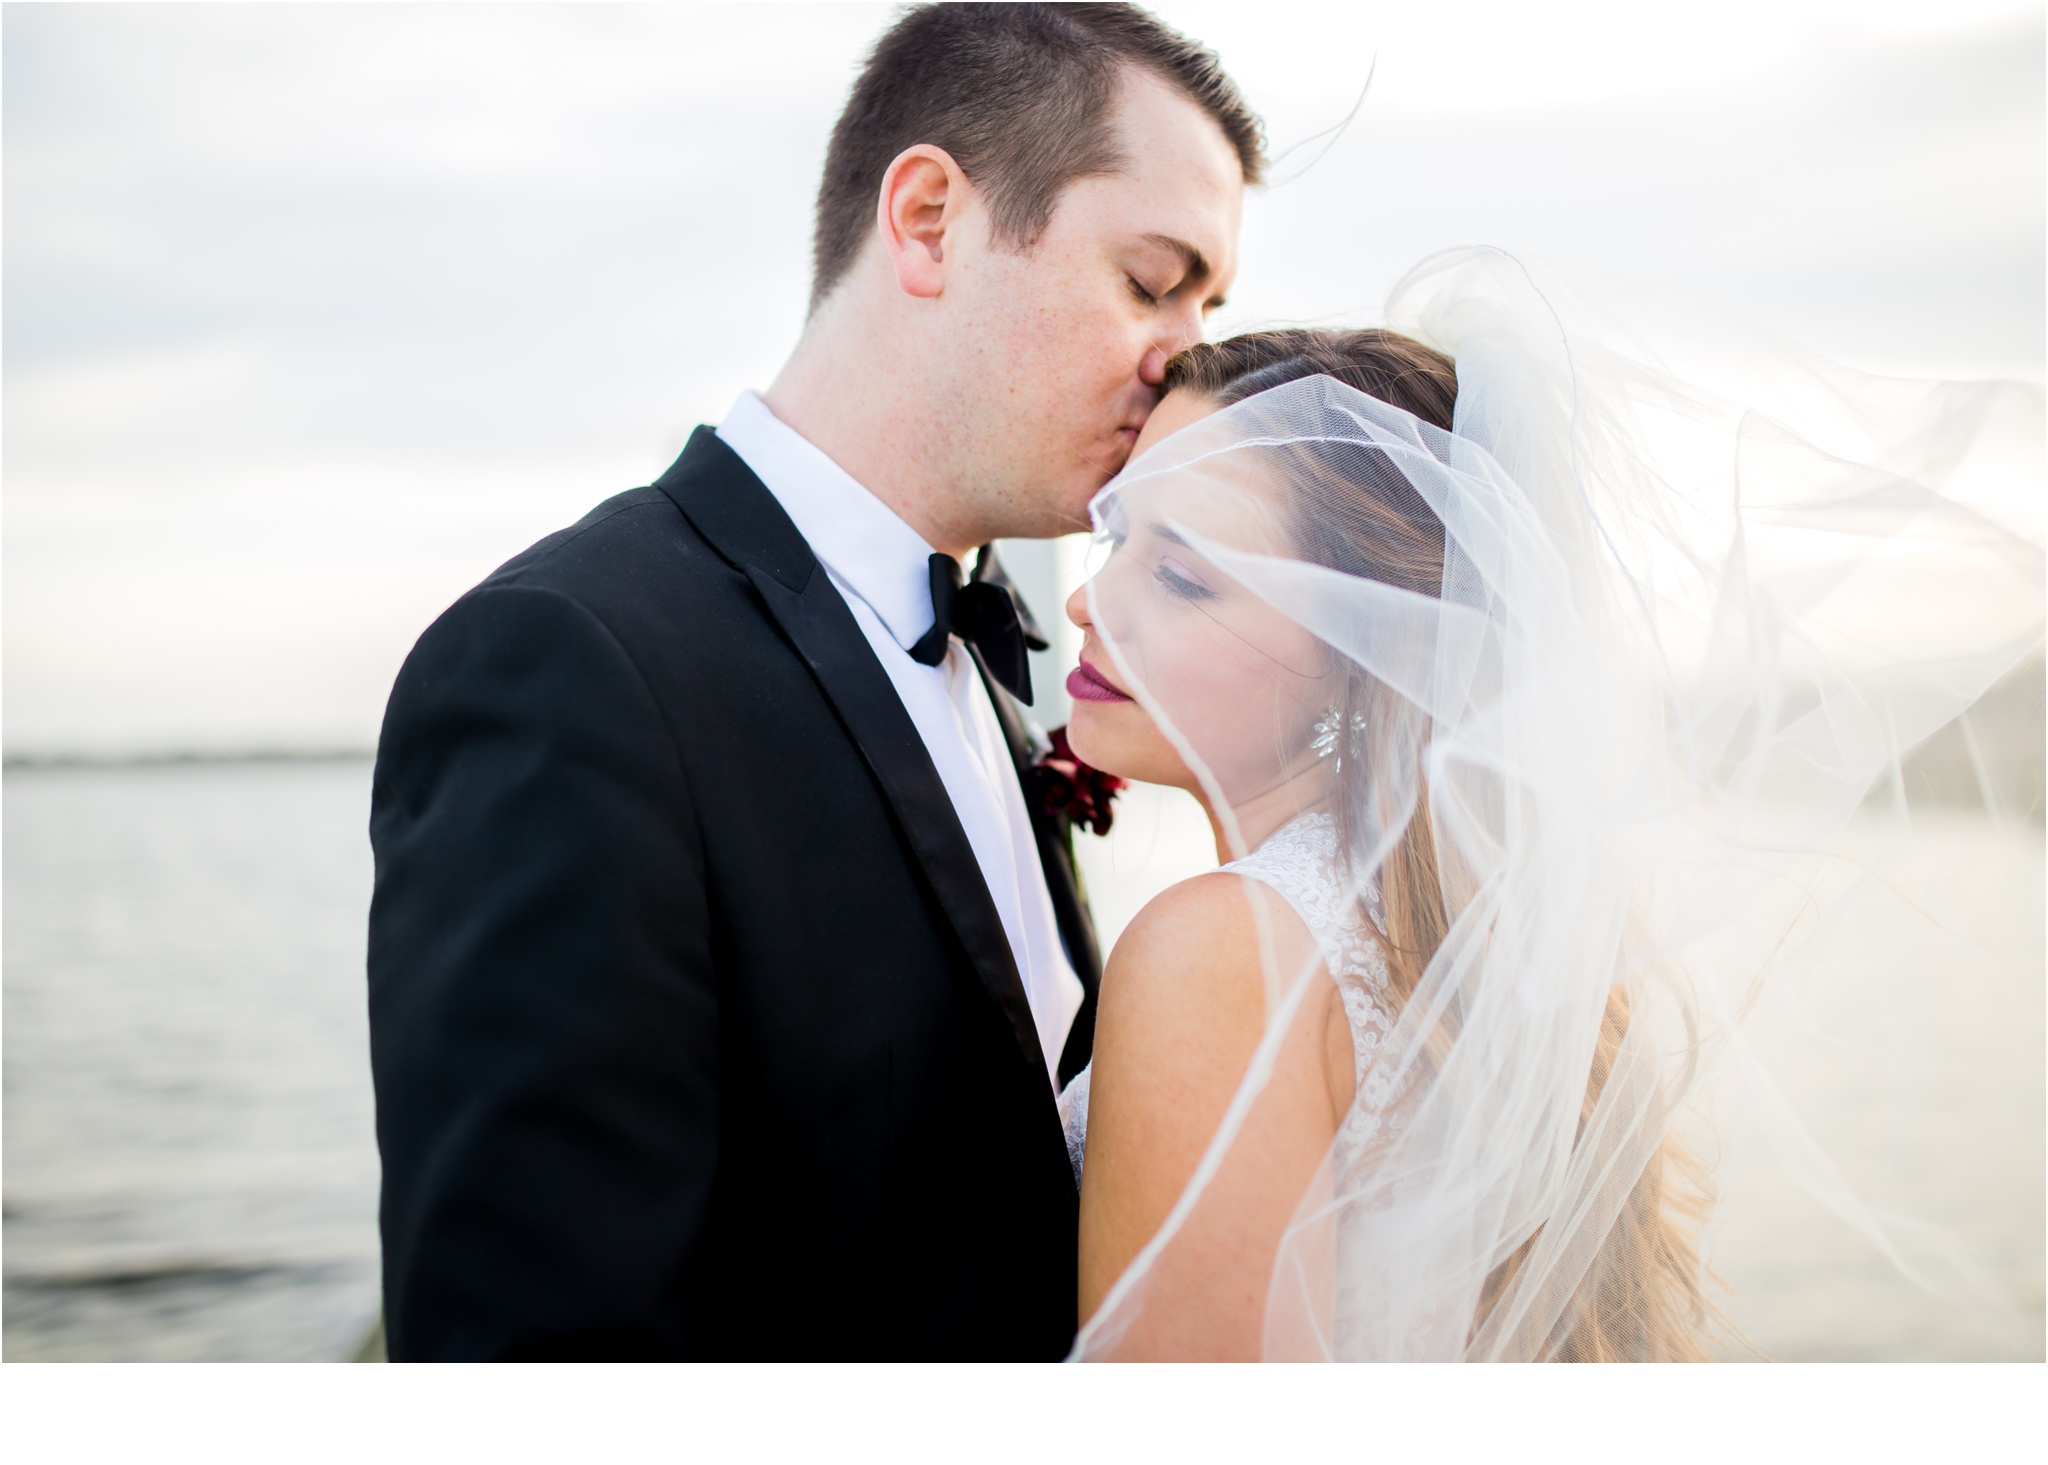 Rainey_Gregg_Photography_St._Simons_Island_Georgia_California_Wedding_Portrait_Photography_0876.jpg